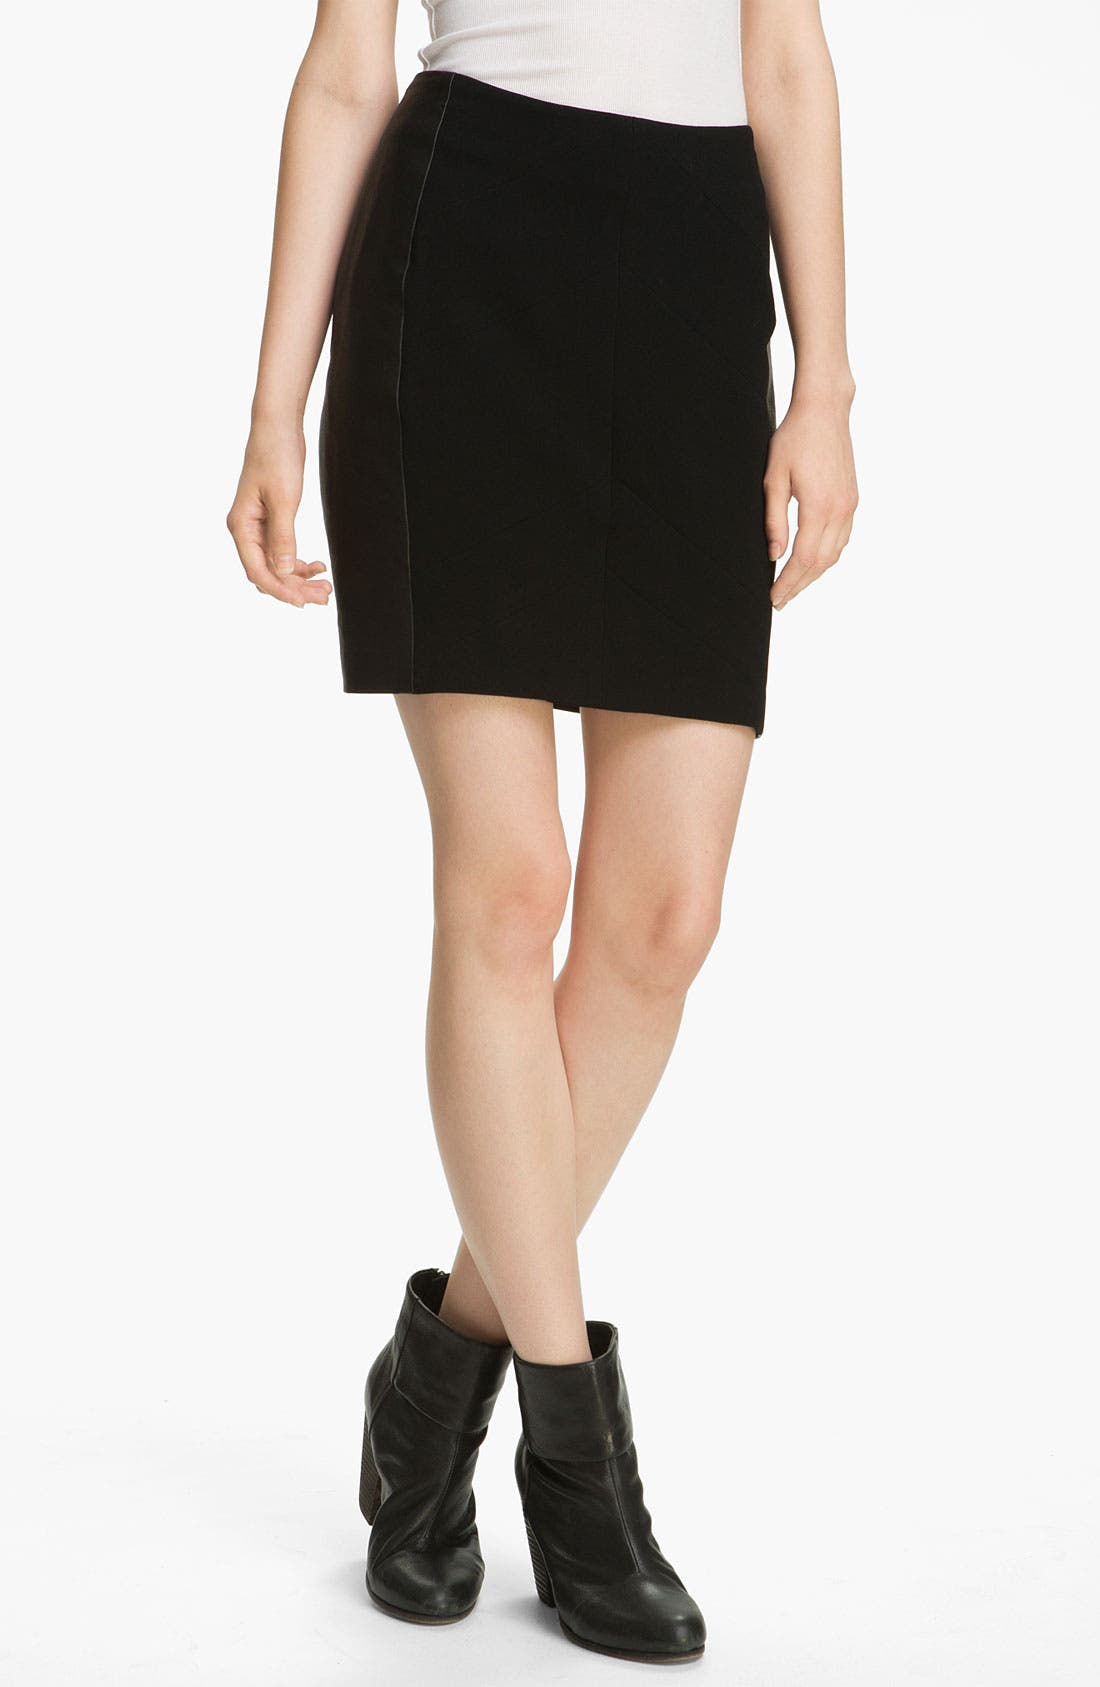 Alternate Image 1 Selected - rag & bone 'Vanhi' Leather Panel Skirt